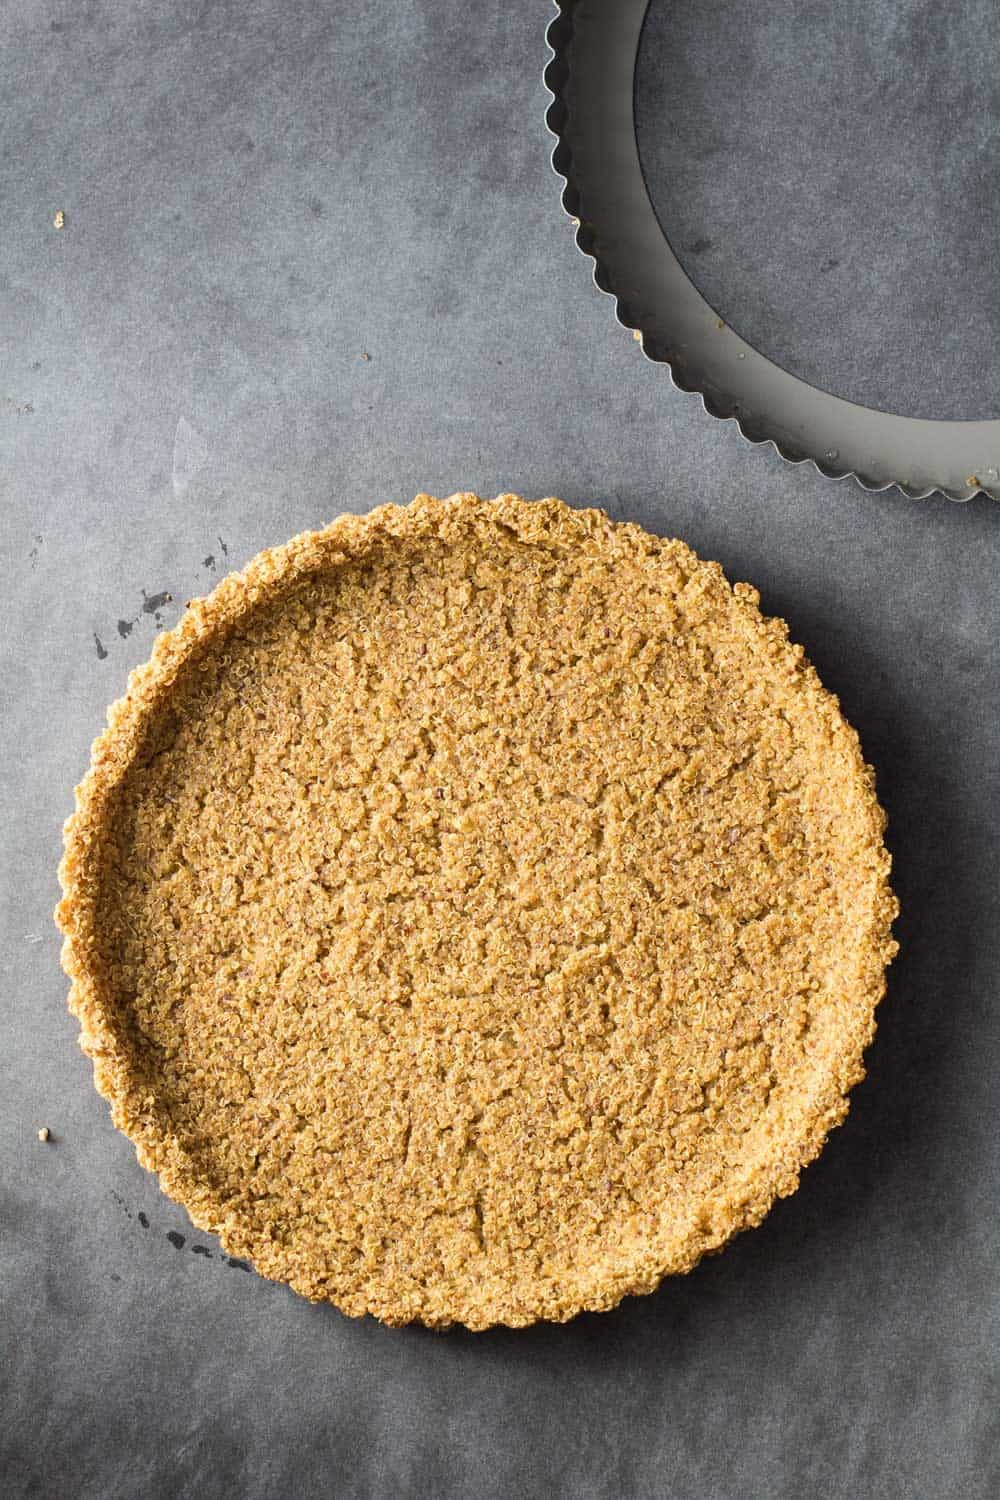 Gluten Free Pie Crust a.k.a. 2-Ingredient Quinoa Crust